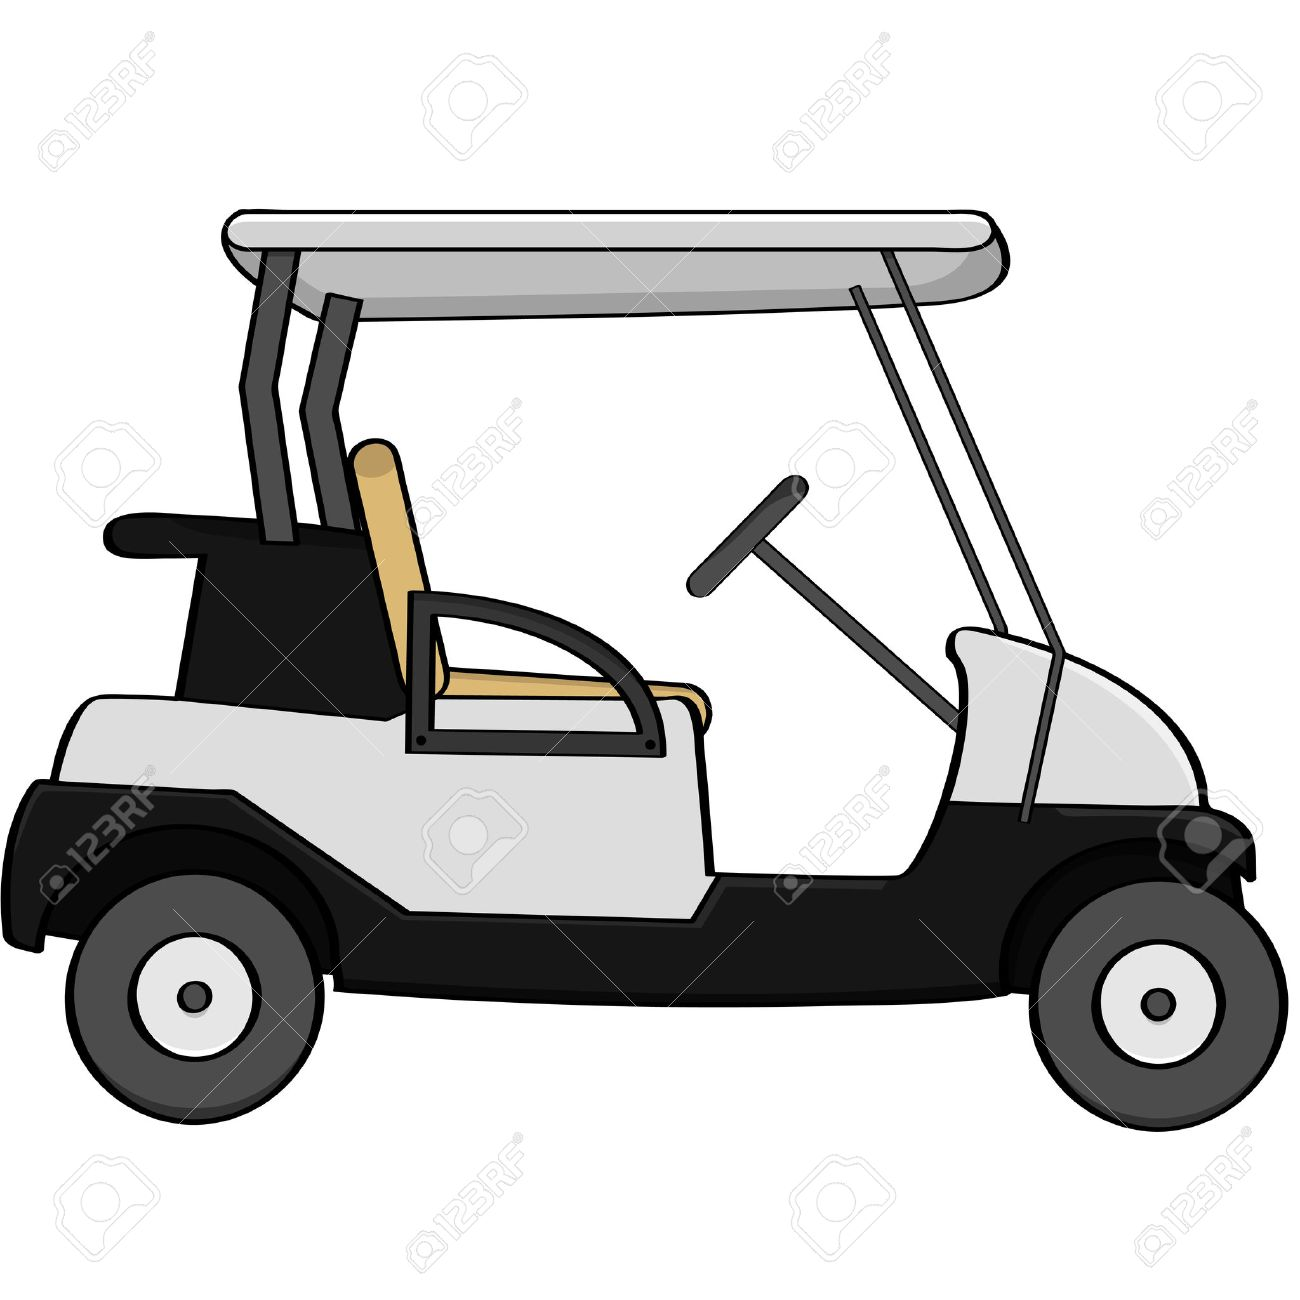 Cartoon Illustration Of An Empty Golf Cart Royalty Free Cliparts Vectors And Stock Illustration Image 26378958